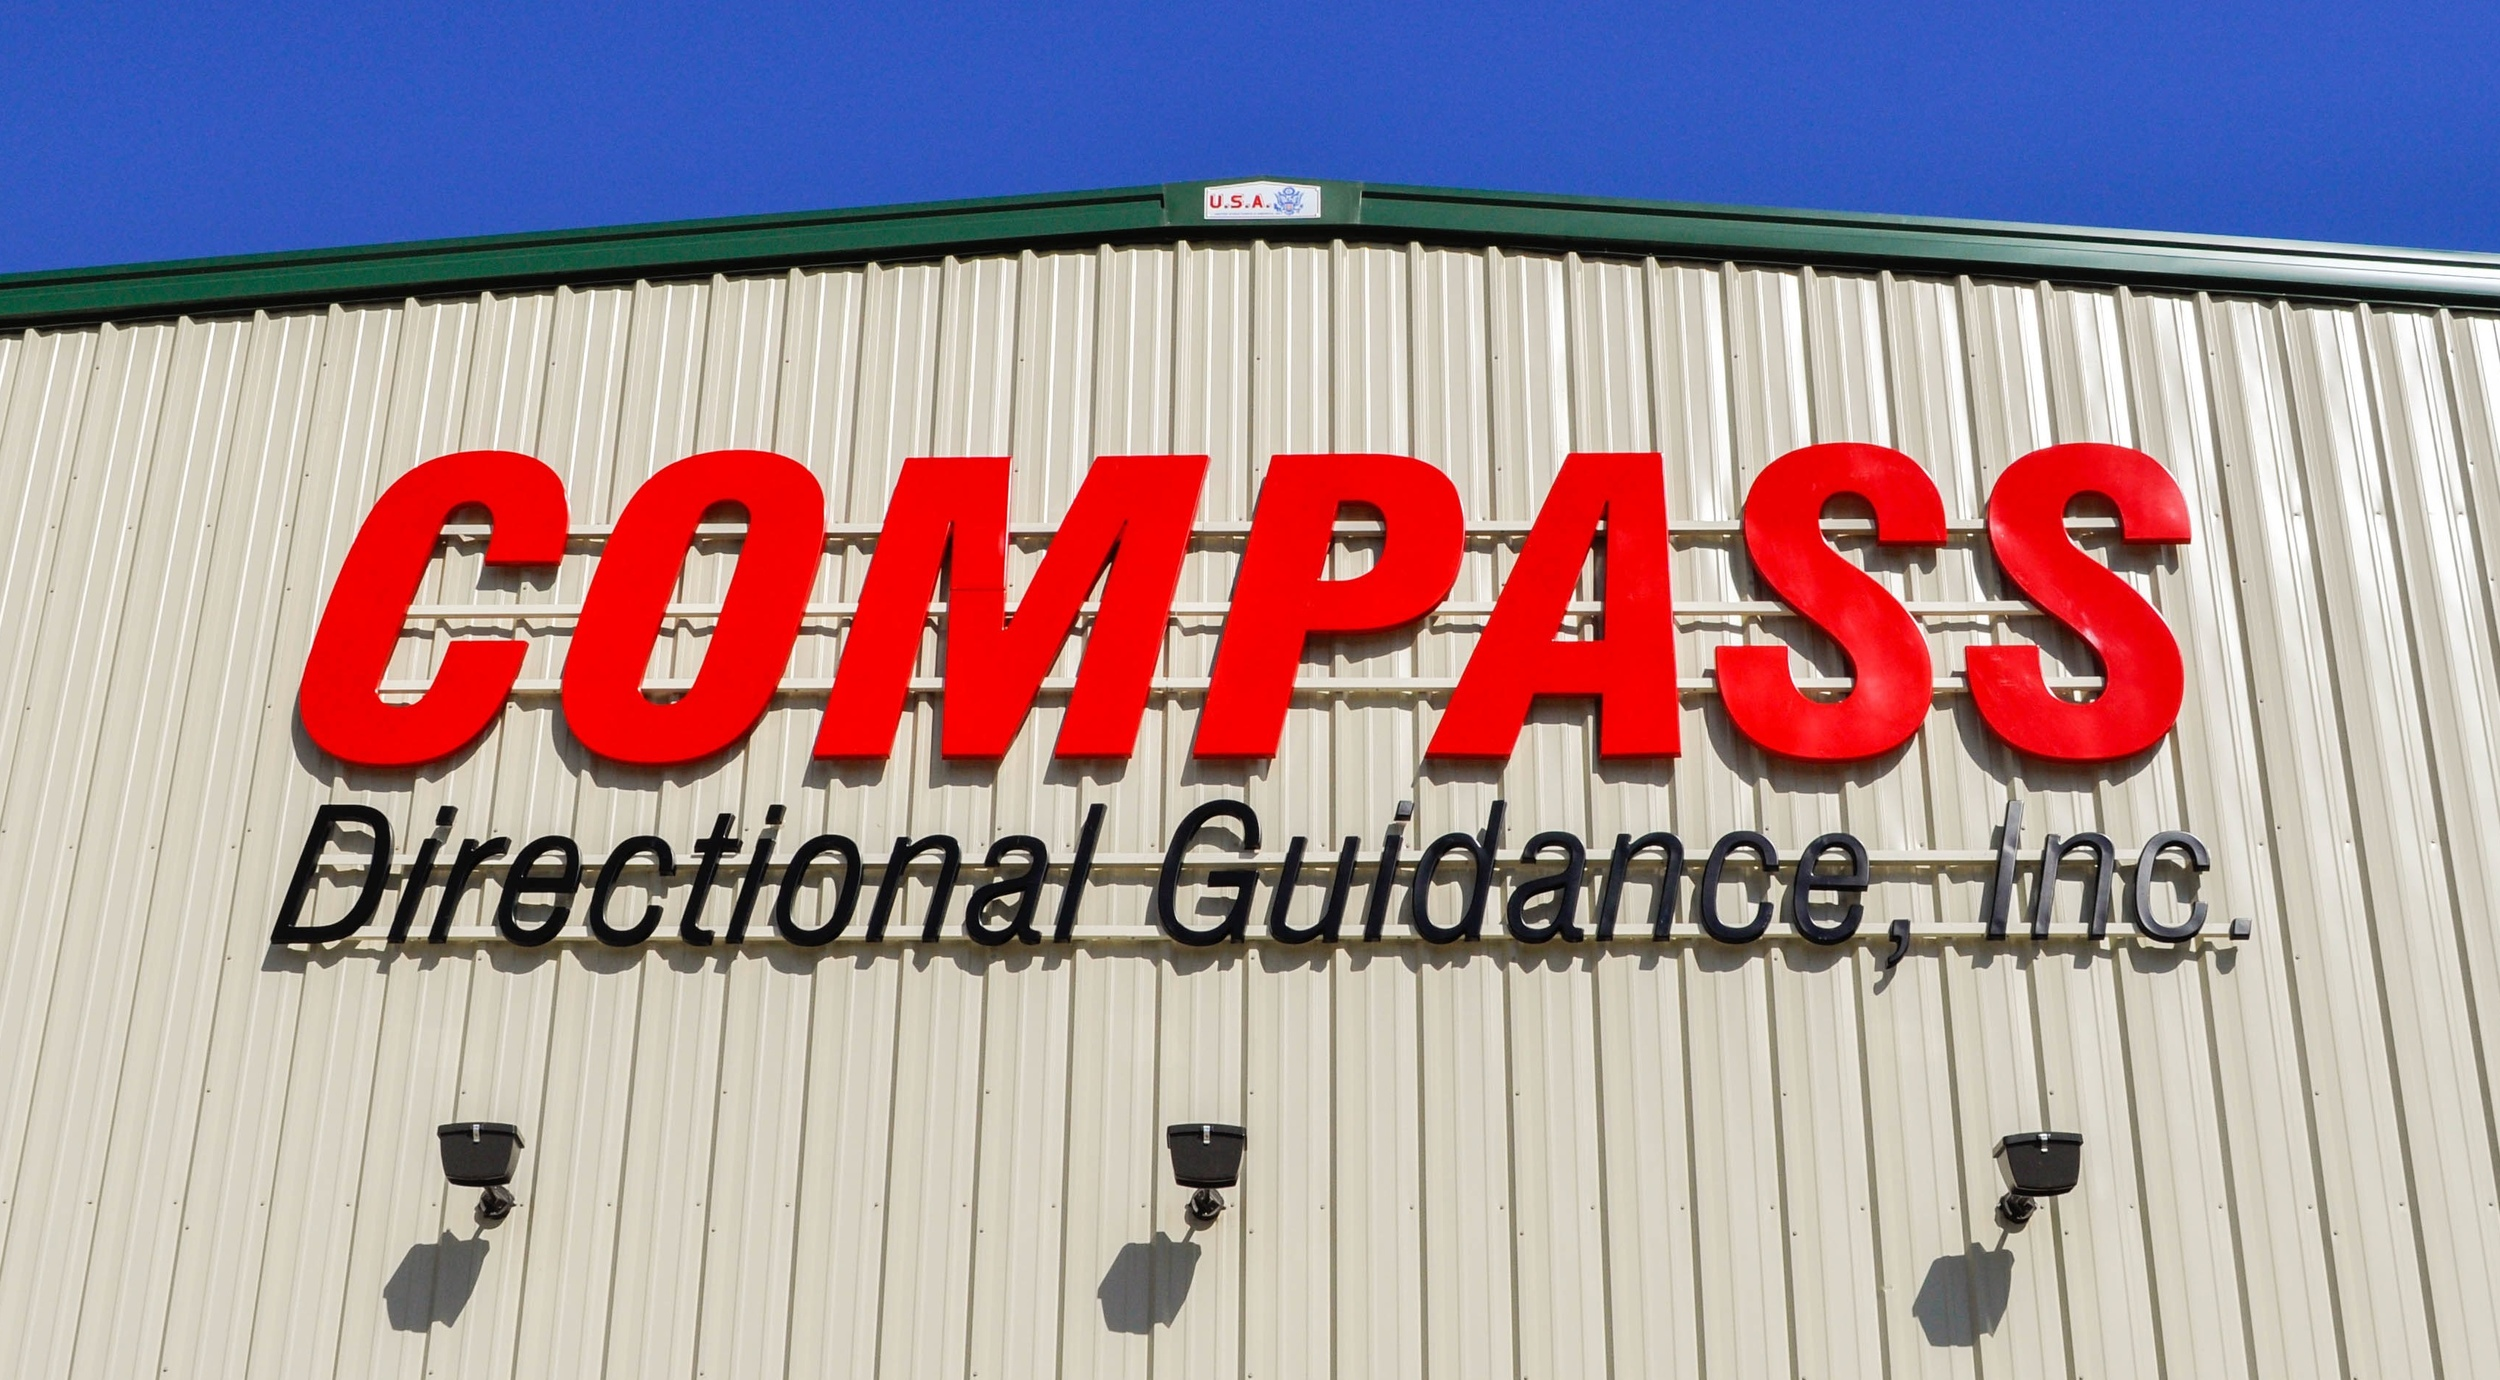 Compass Directional Guidance, Inc,